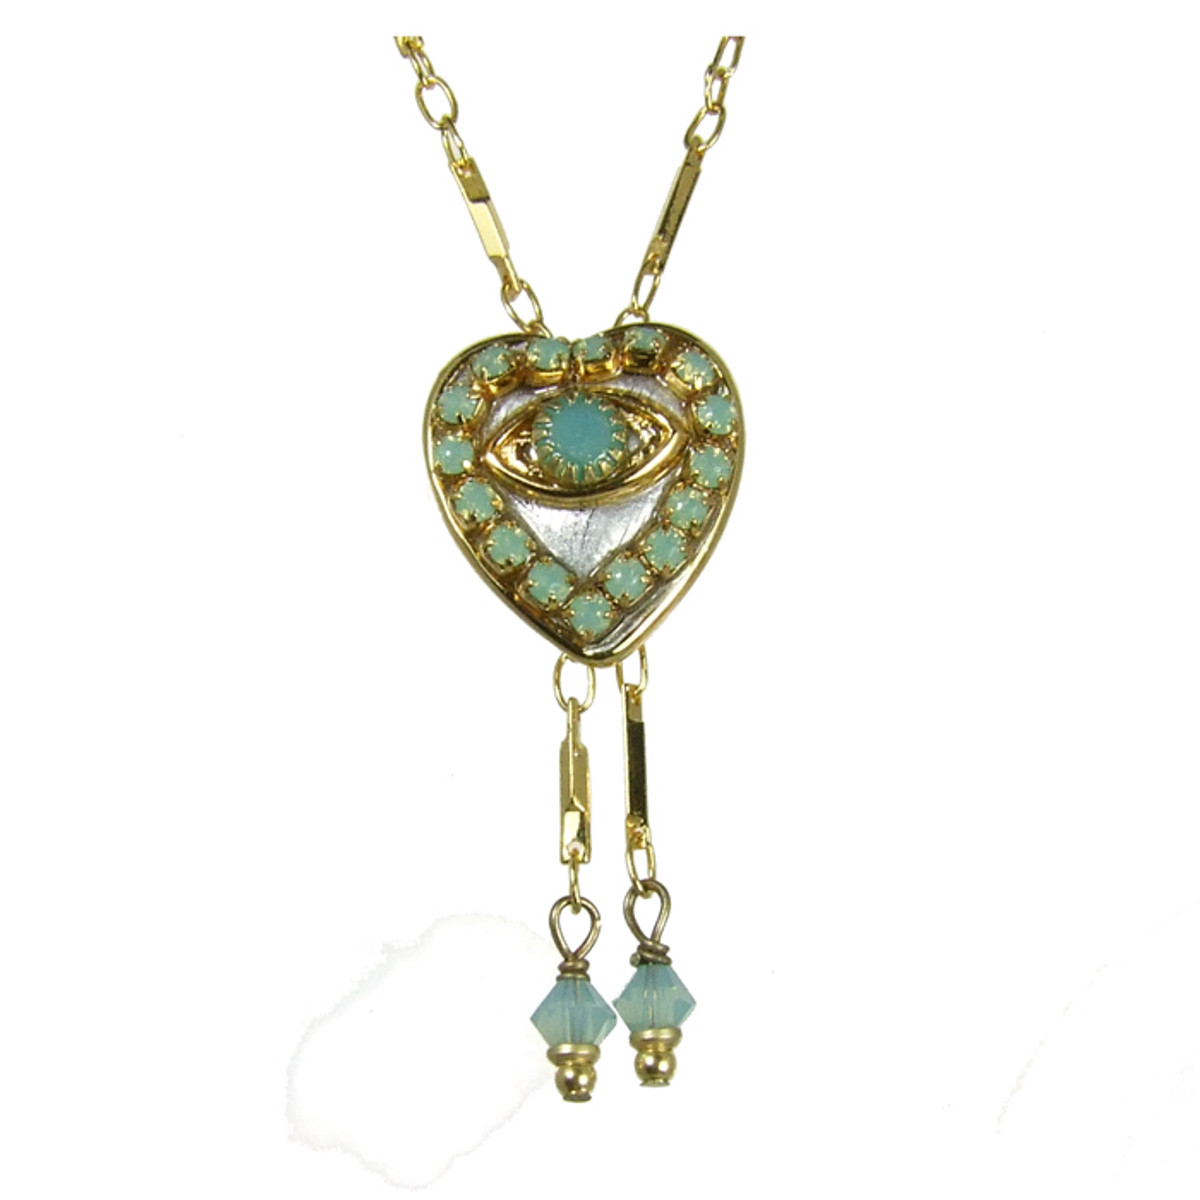 Evil Eye Necklace - Small, Silver Heart With Opal Crystals & Two Dangles